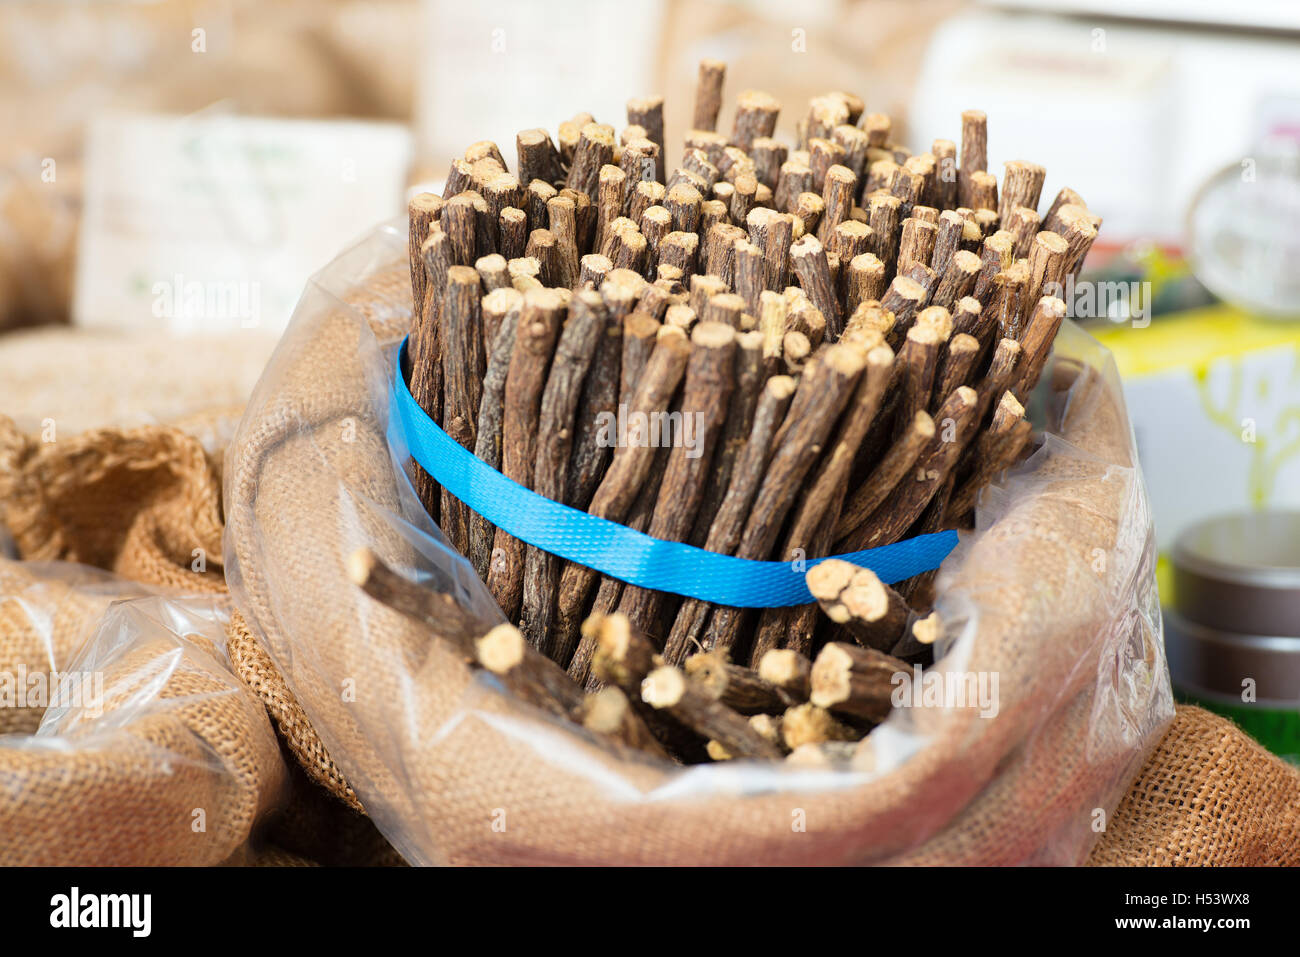 Licorice sticks packed street markets - Stock Image